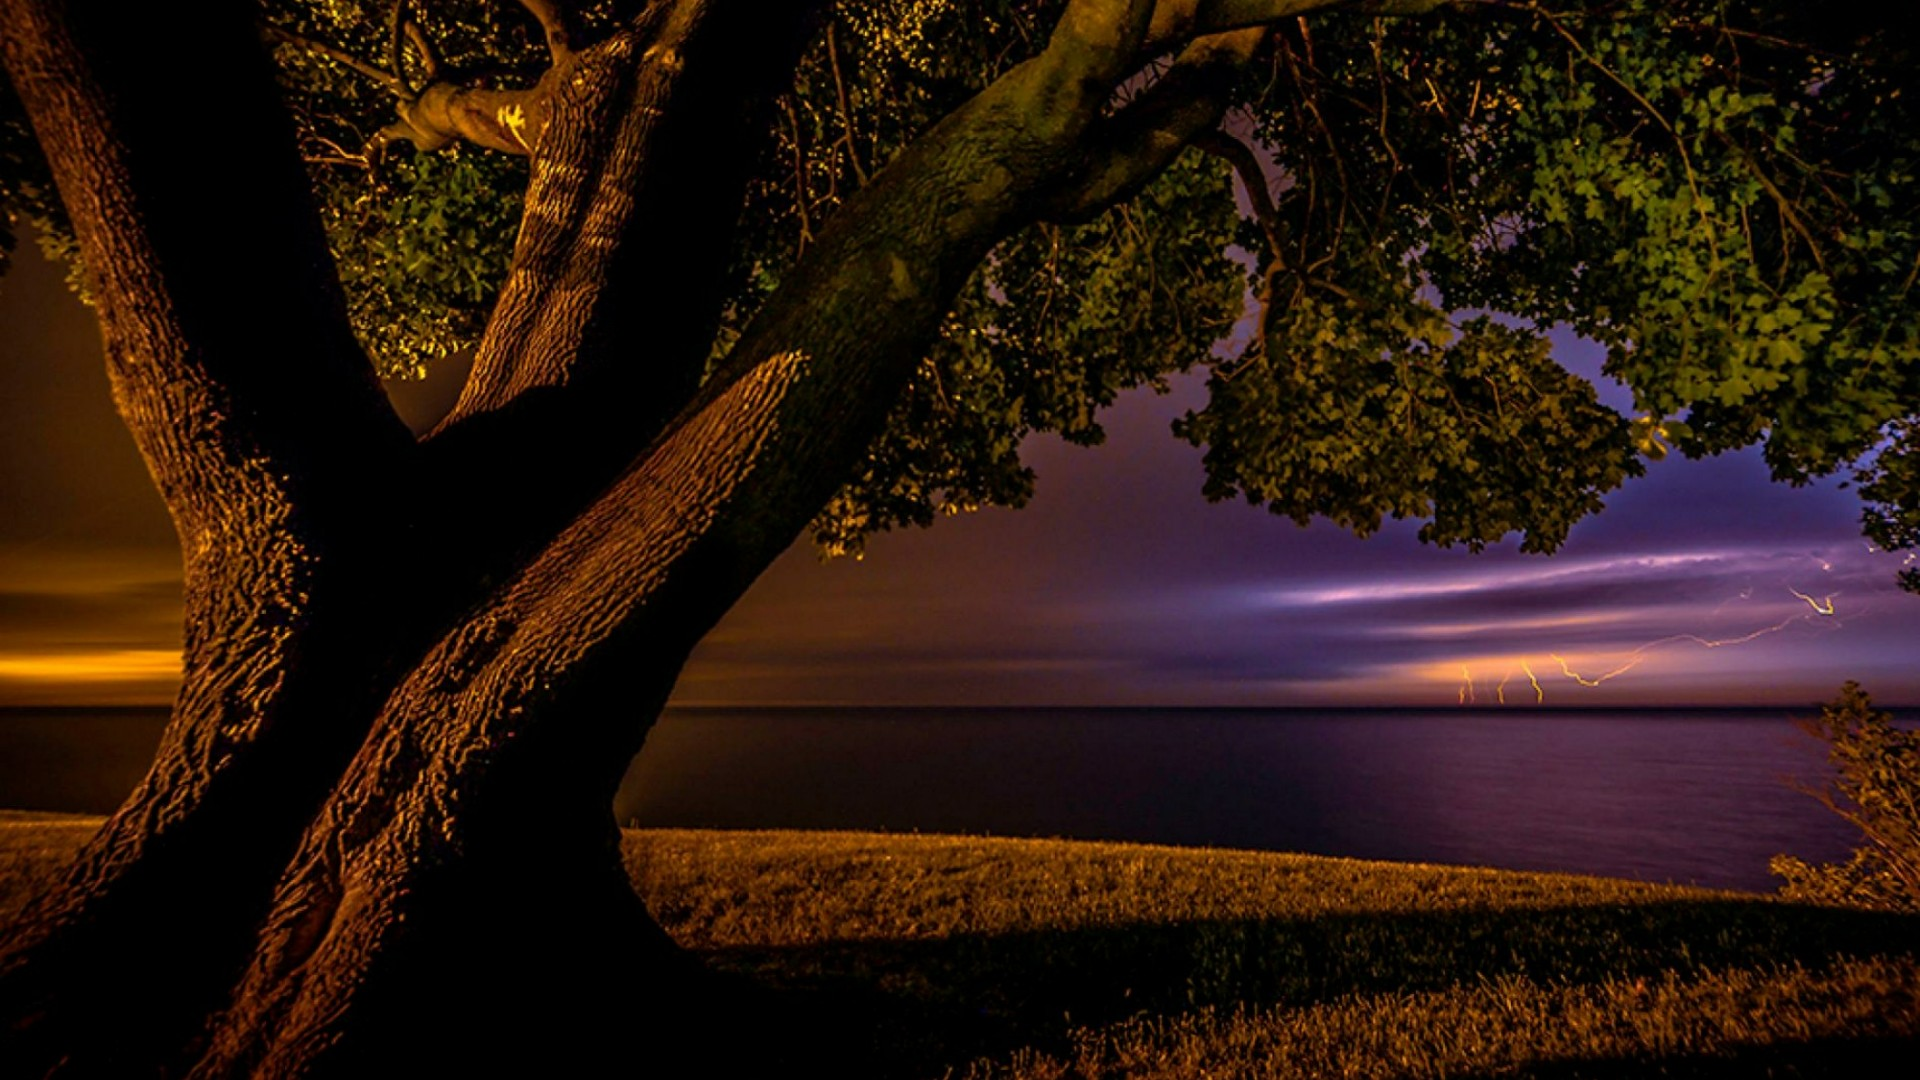 Lone tree in the storm - Lake Ontario wallpaper